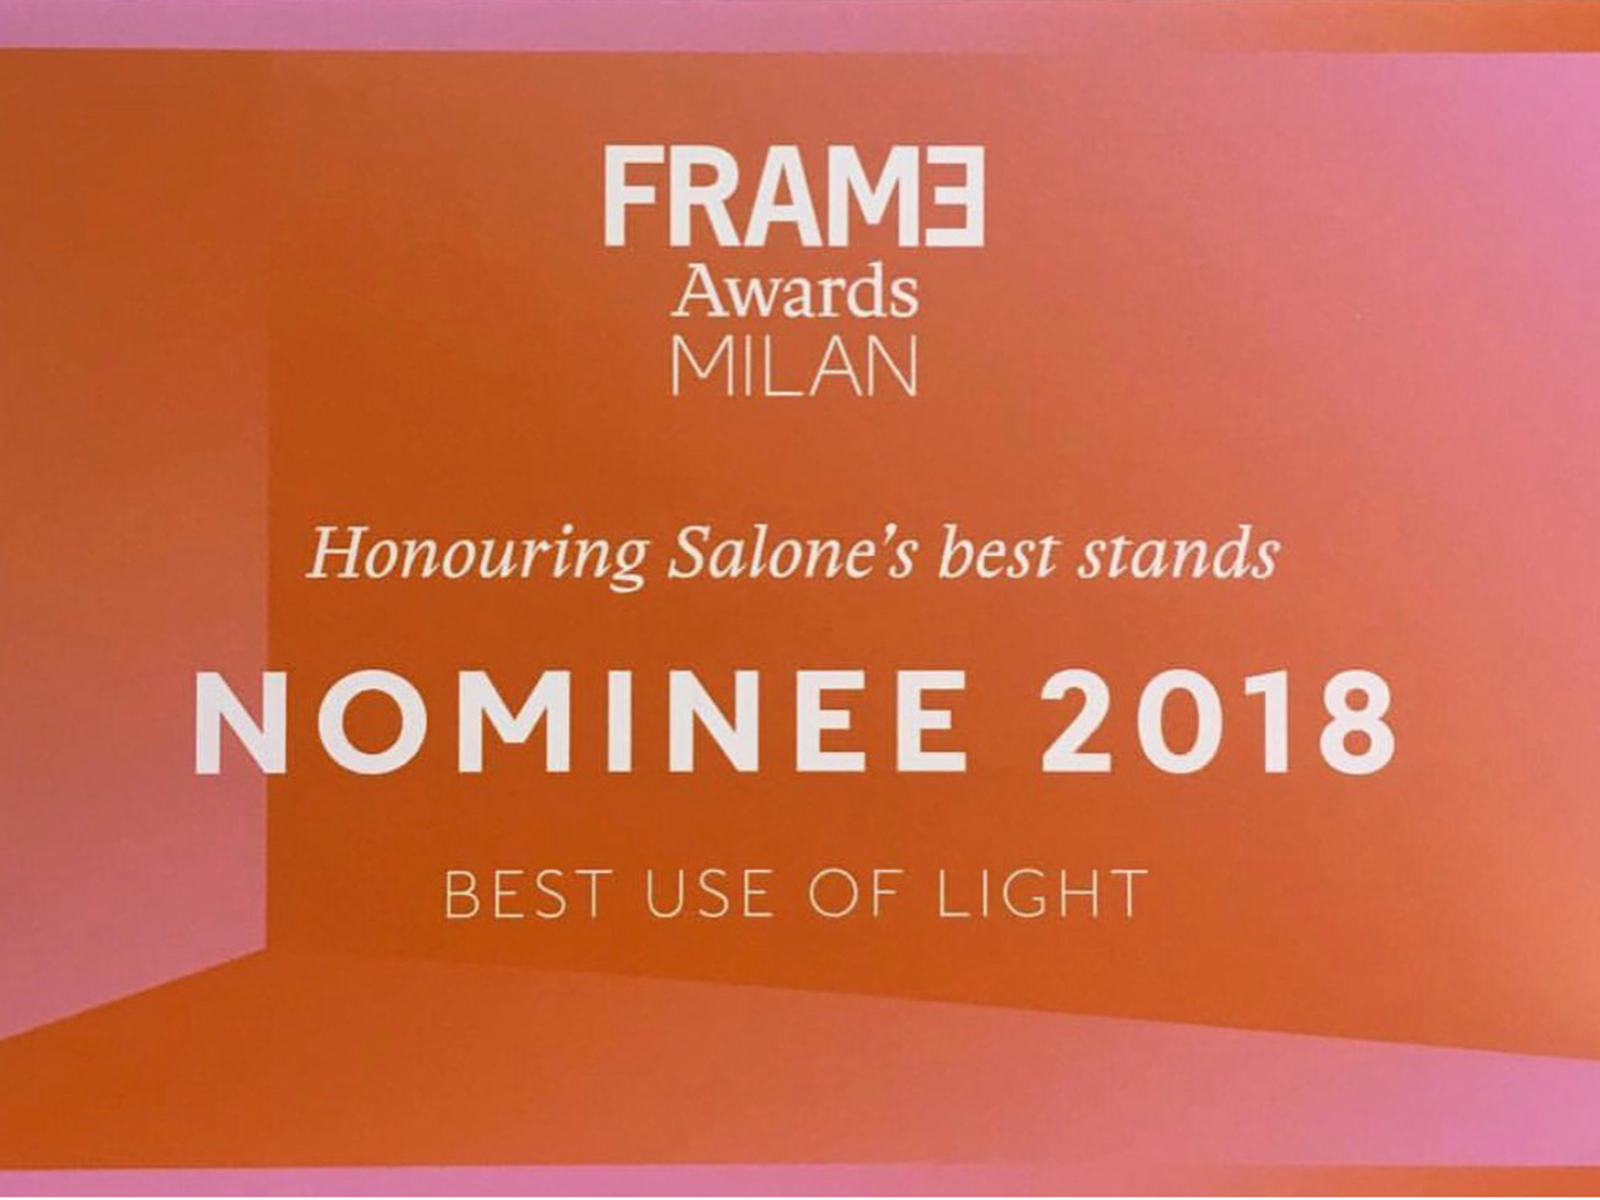 Nominee Frame Award Milan 2018 - Swedese stand Milan 2018, nominated best use of light